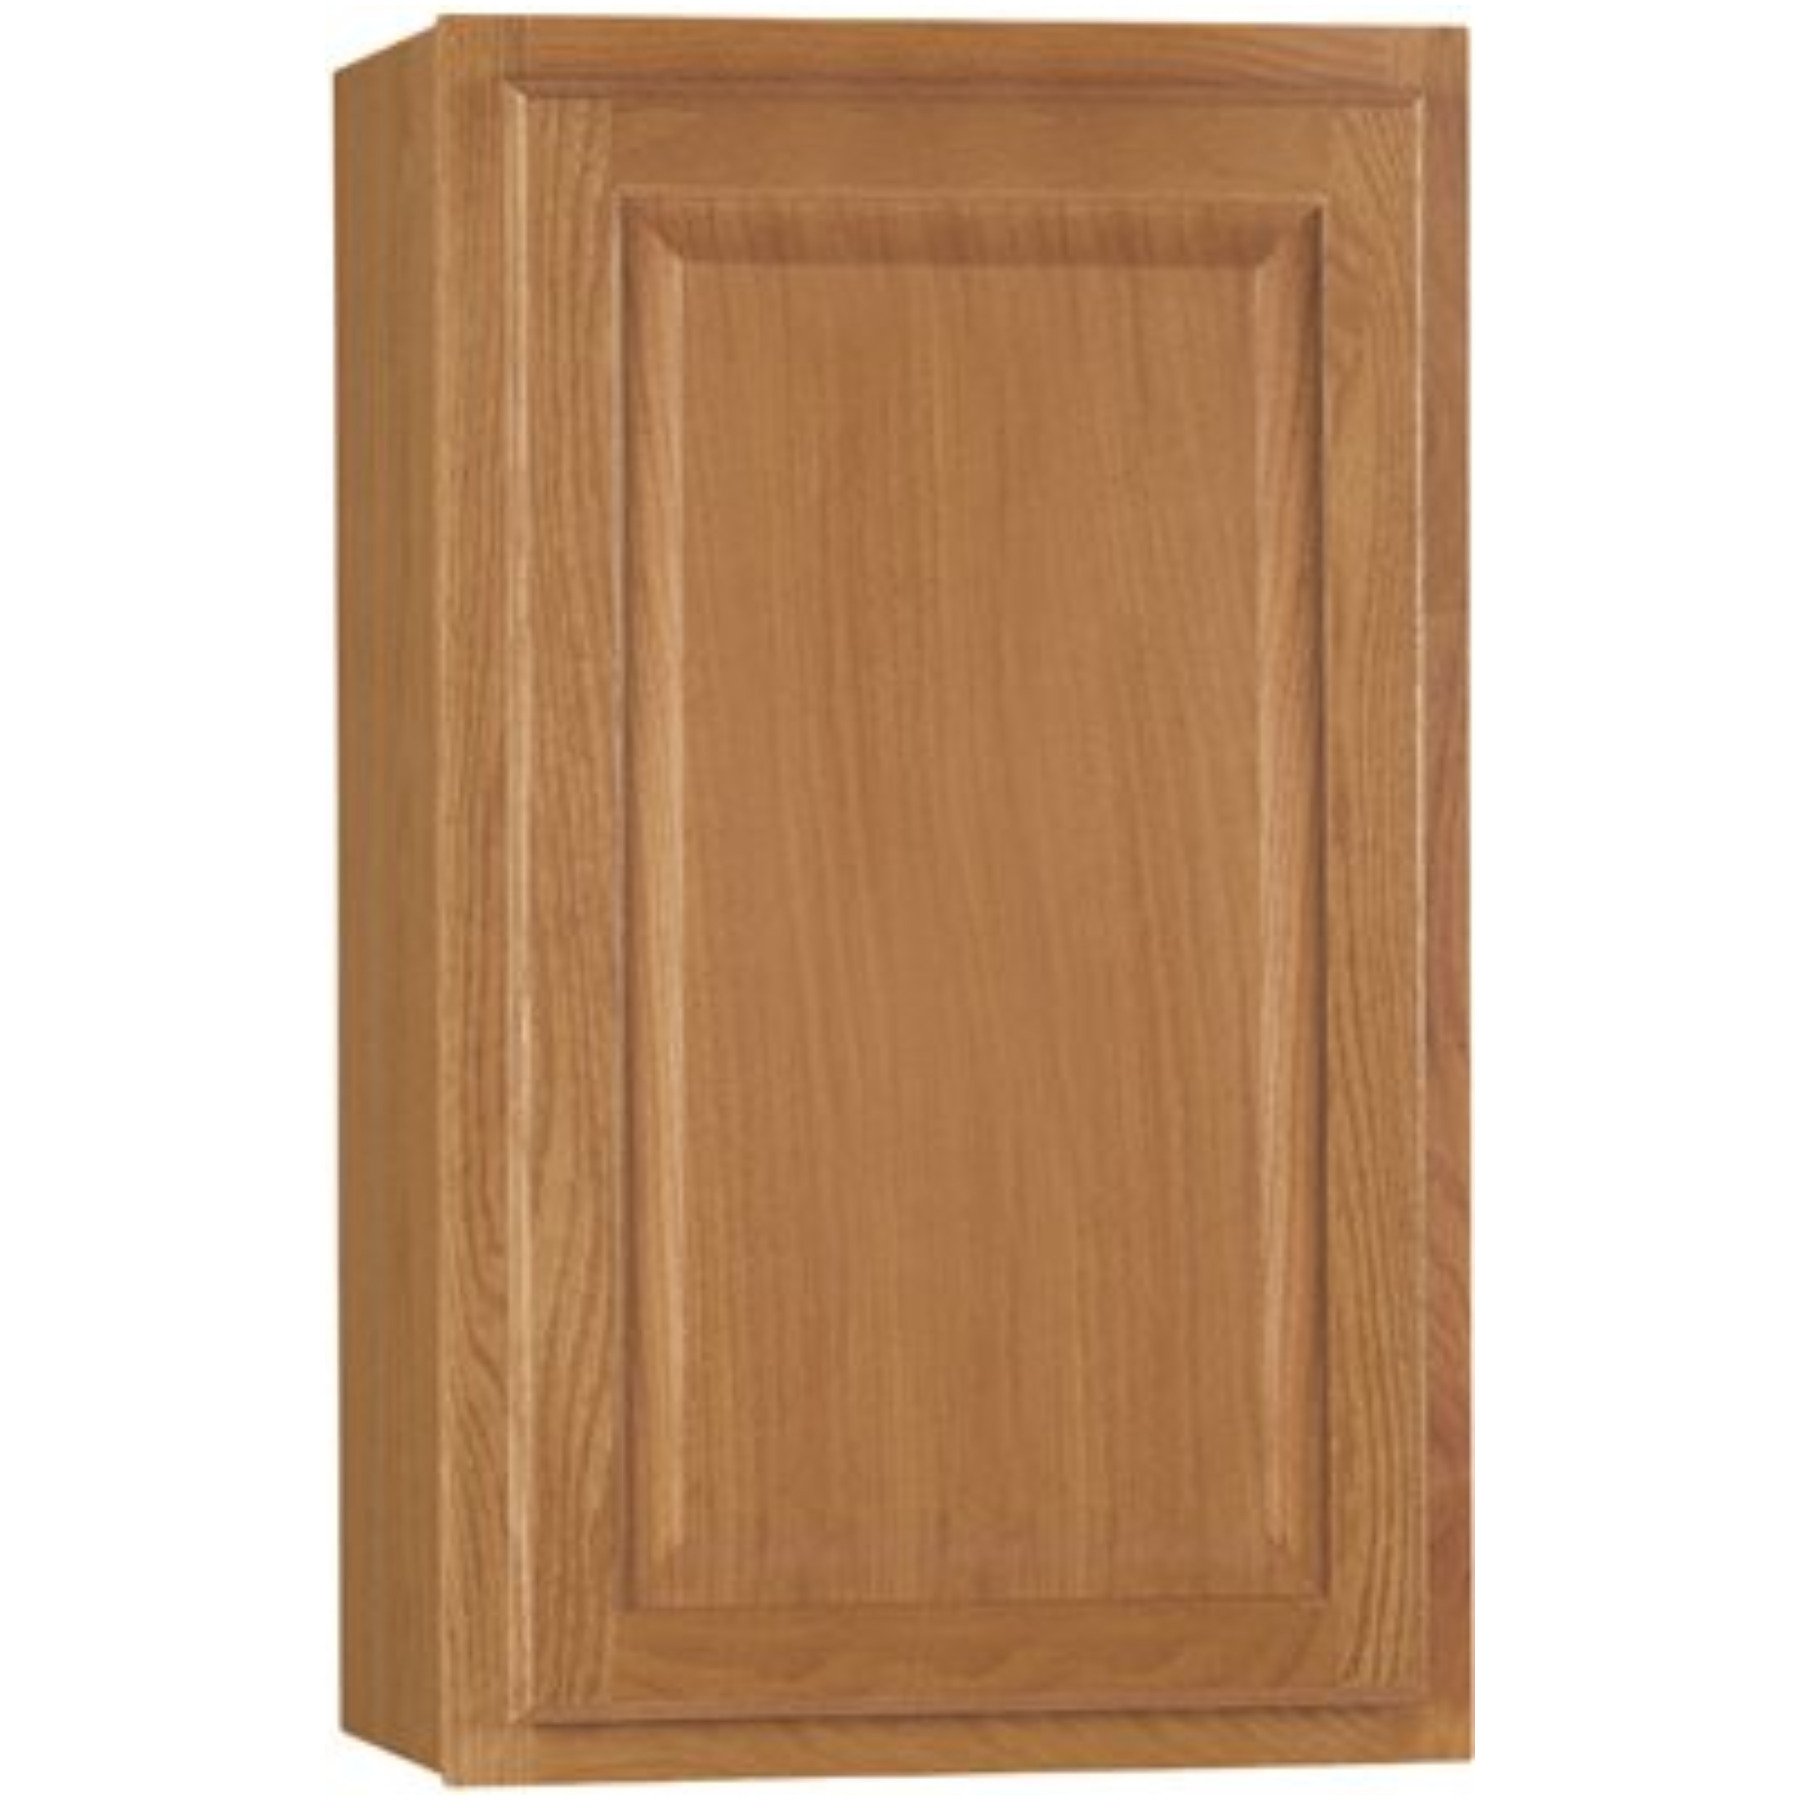 RSI HOME PRODUCTS HAMILTON KITCHEN WALL CABINET, FULLY ASSEMBLED, RAISED PANEL, OAK, 21X30X12 IN.